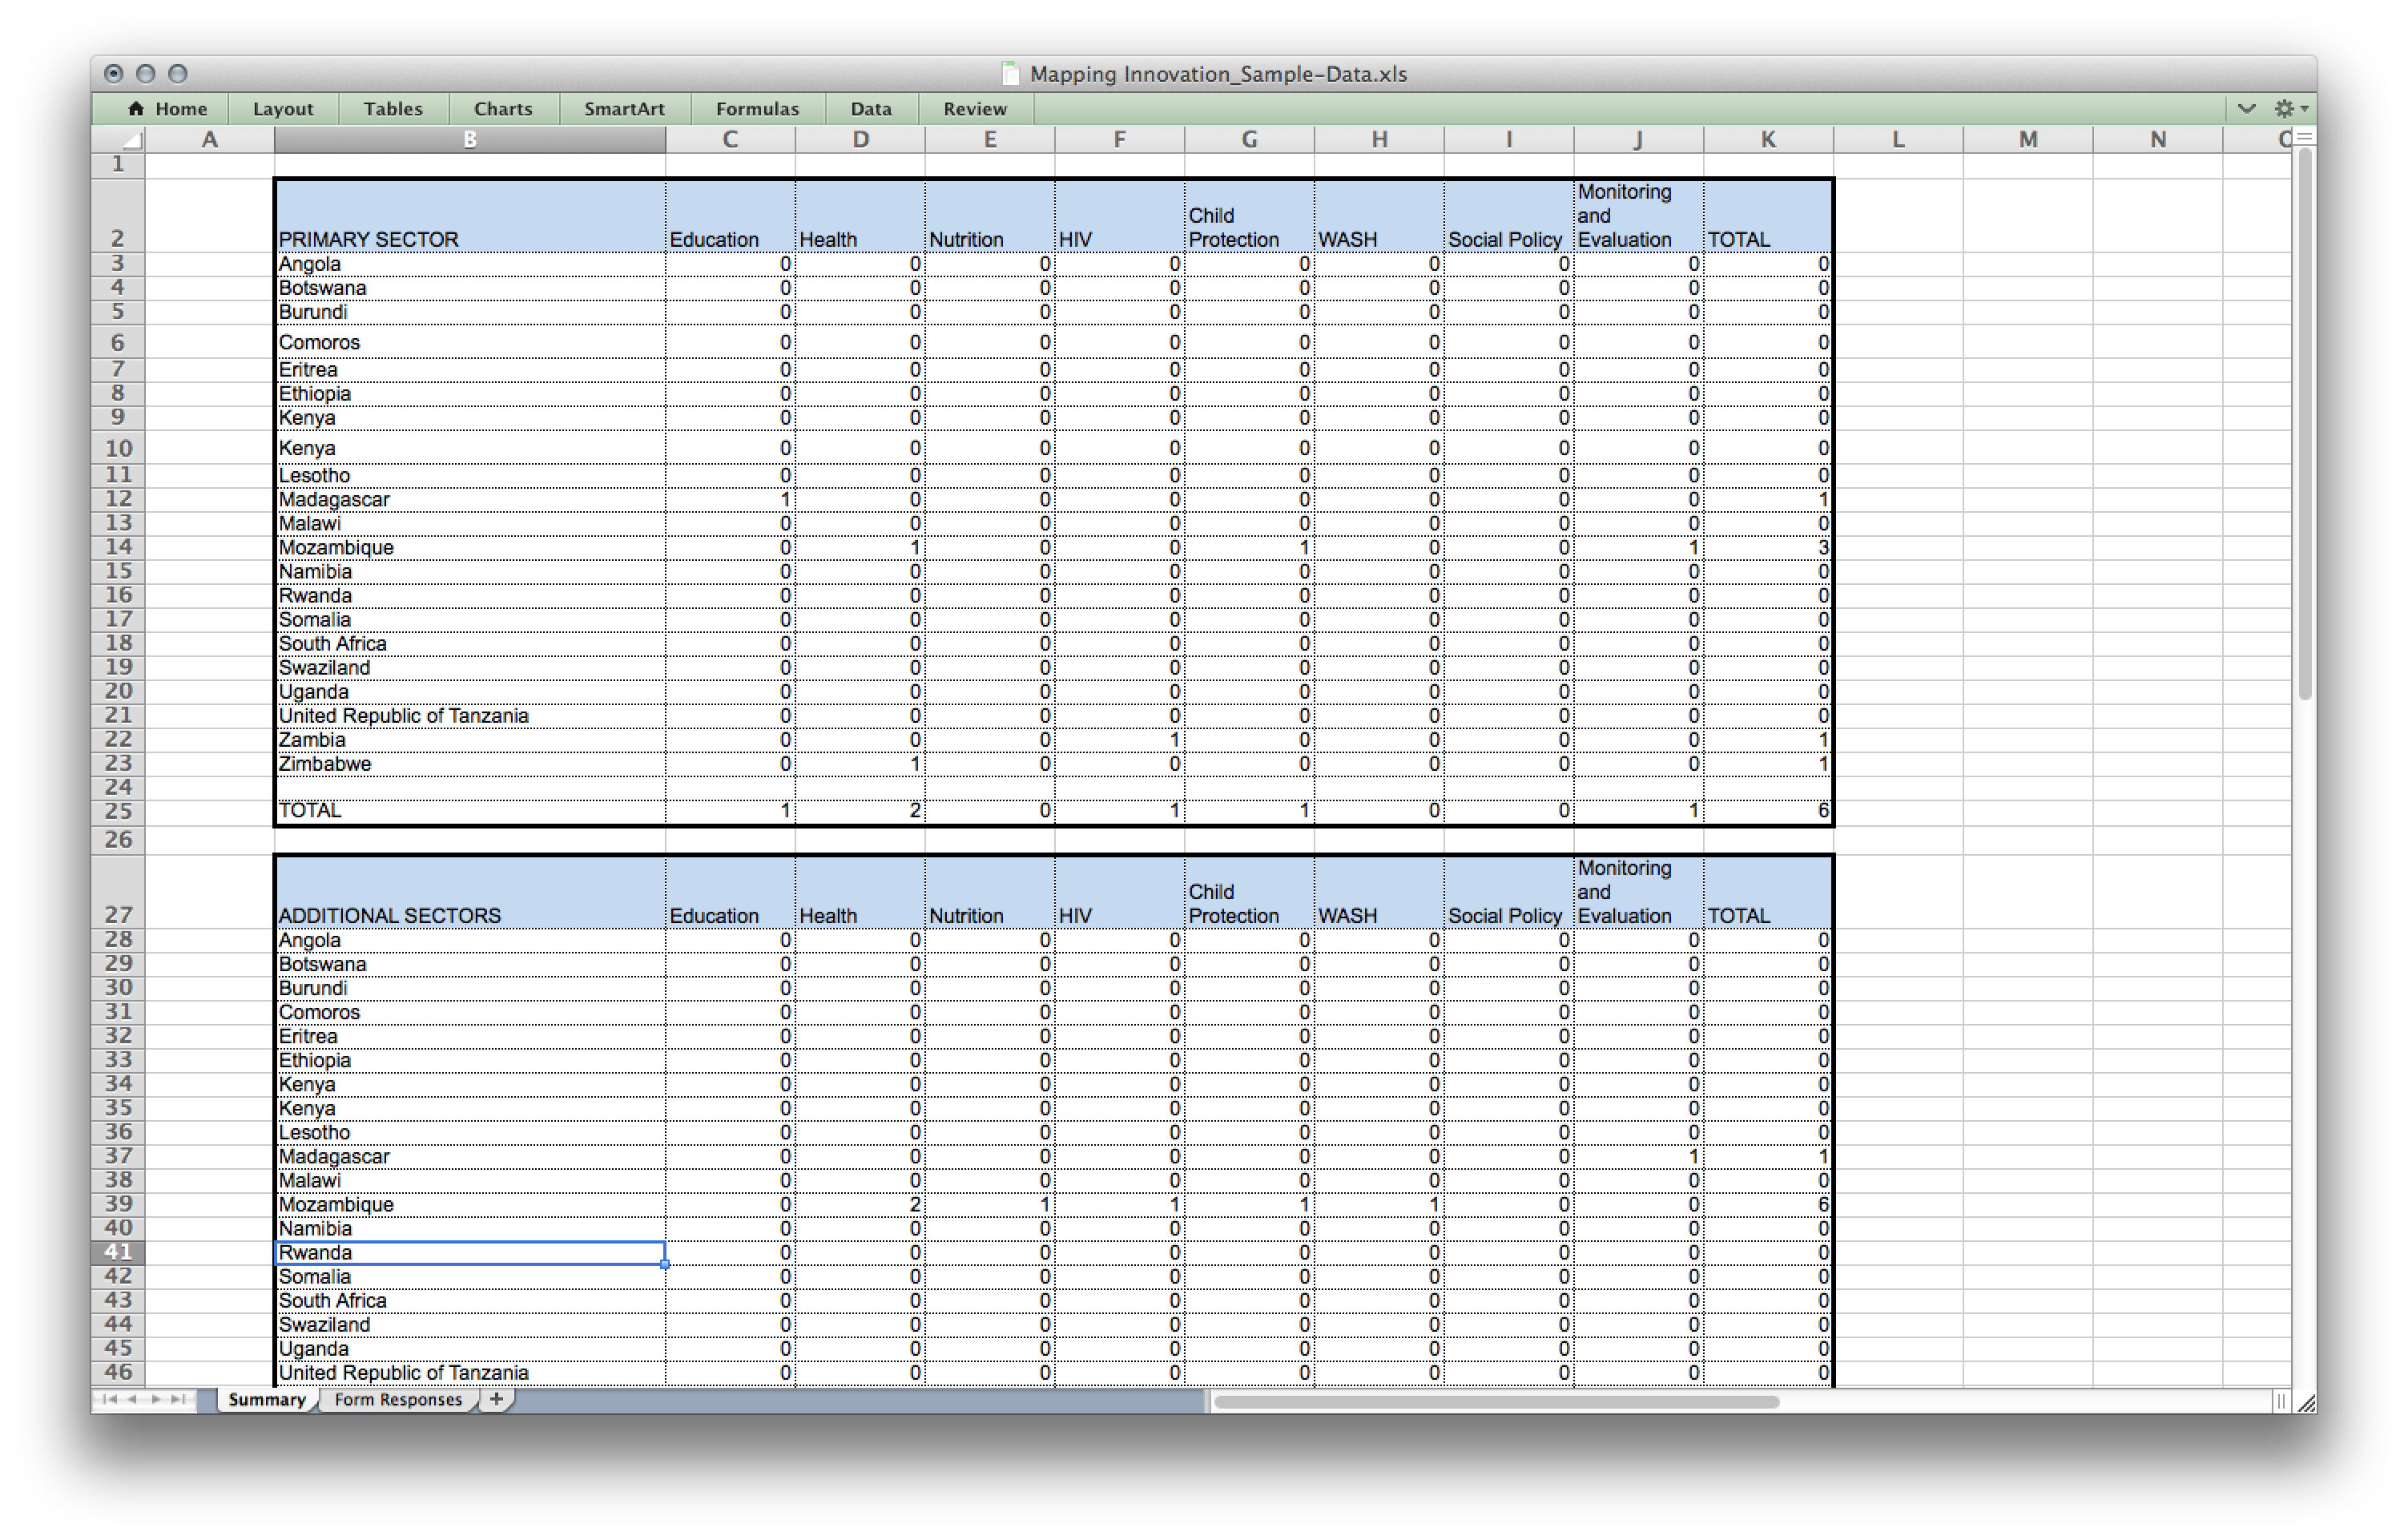 Google form data gets collected into excel